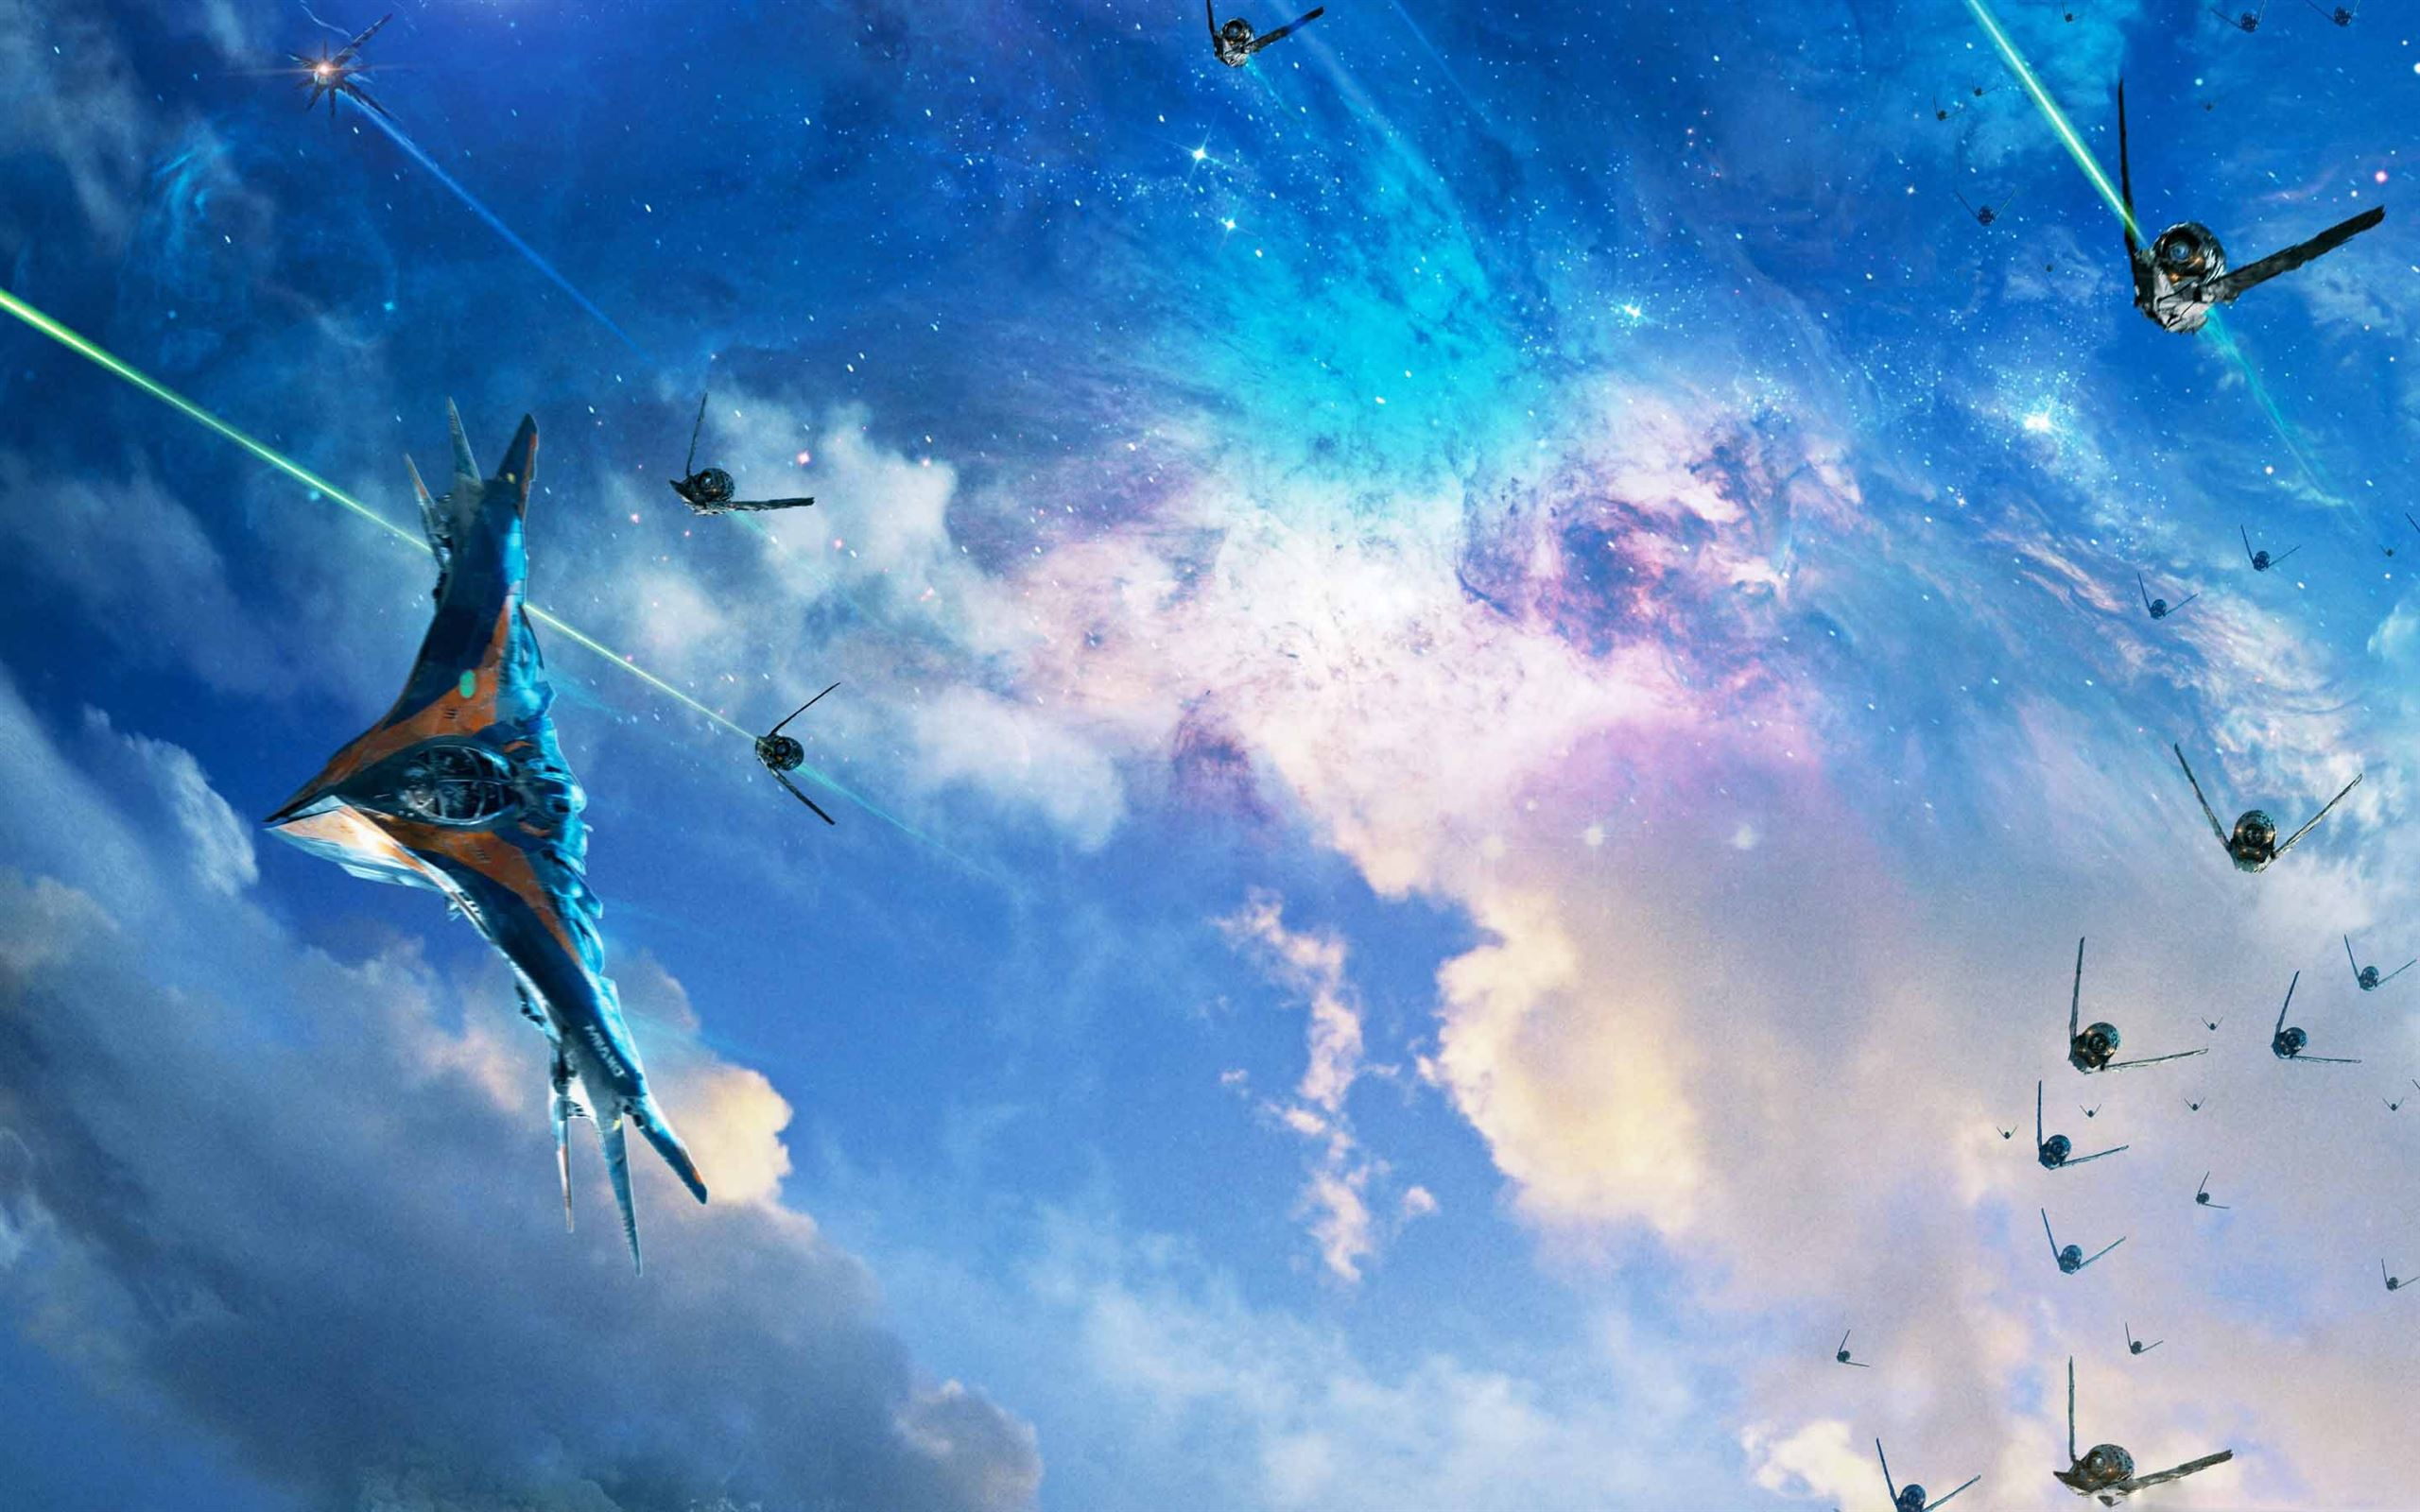 Guardians Of The Galaxy Spaceships Mac Wallpaper Download